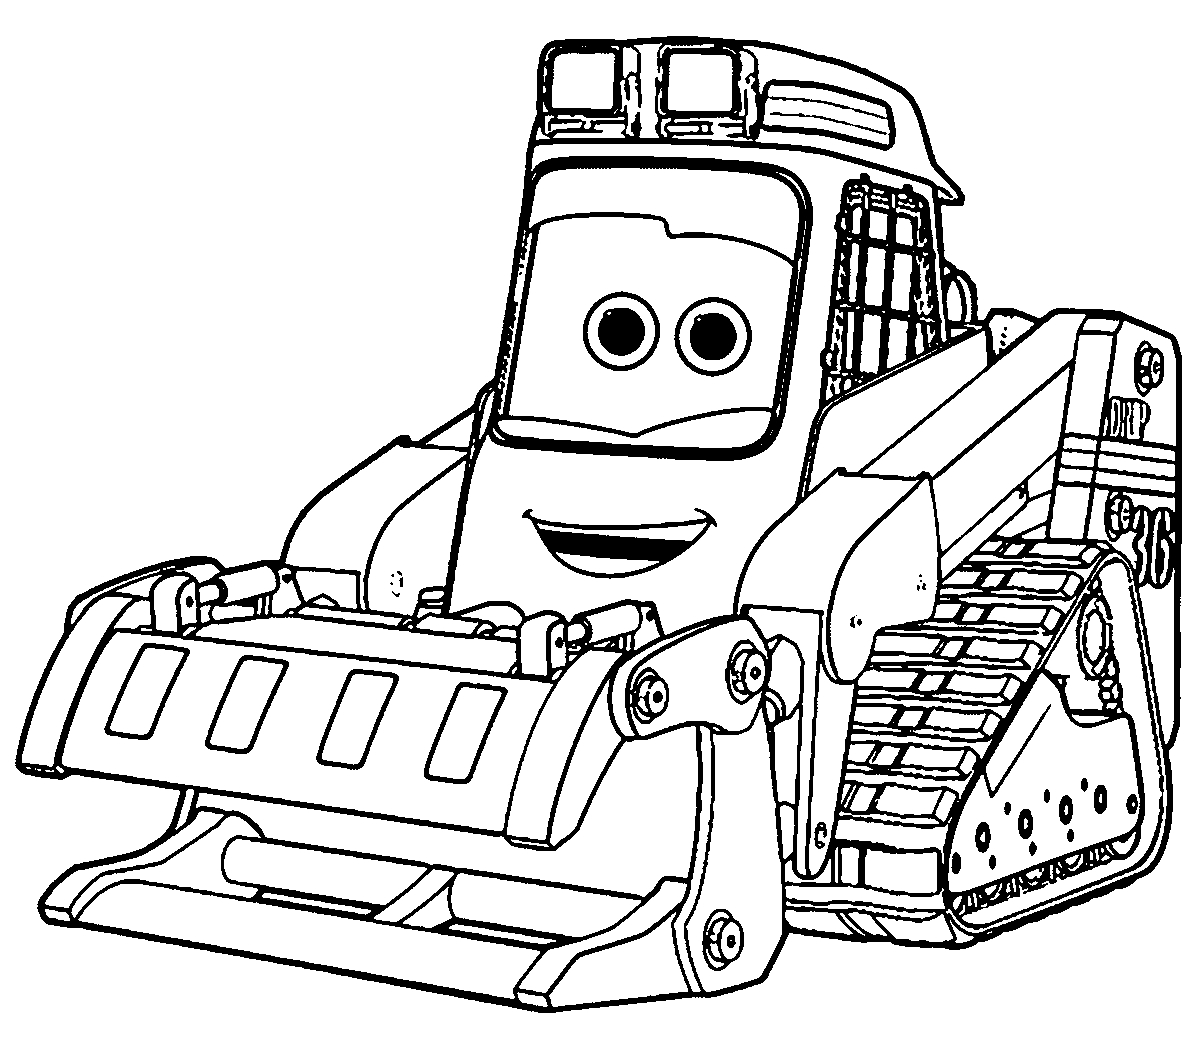 4 wheeler coloring pages four wheeler coloring pages at getcoloringscom free pages 4 wheeler coloring